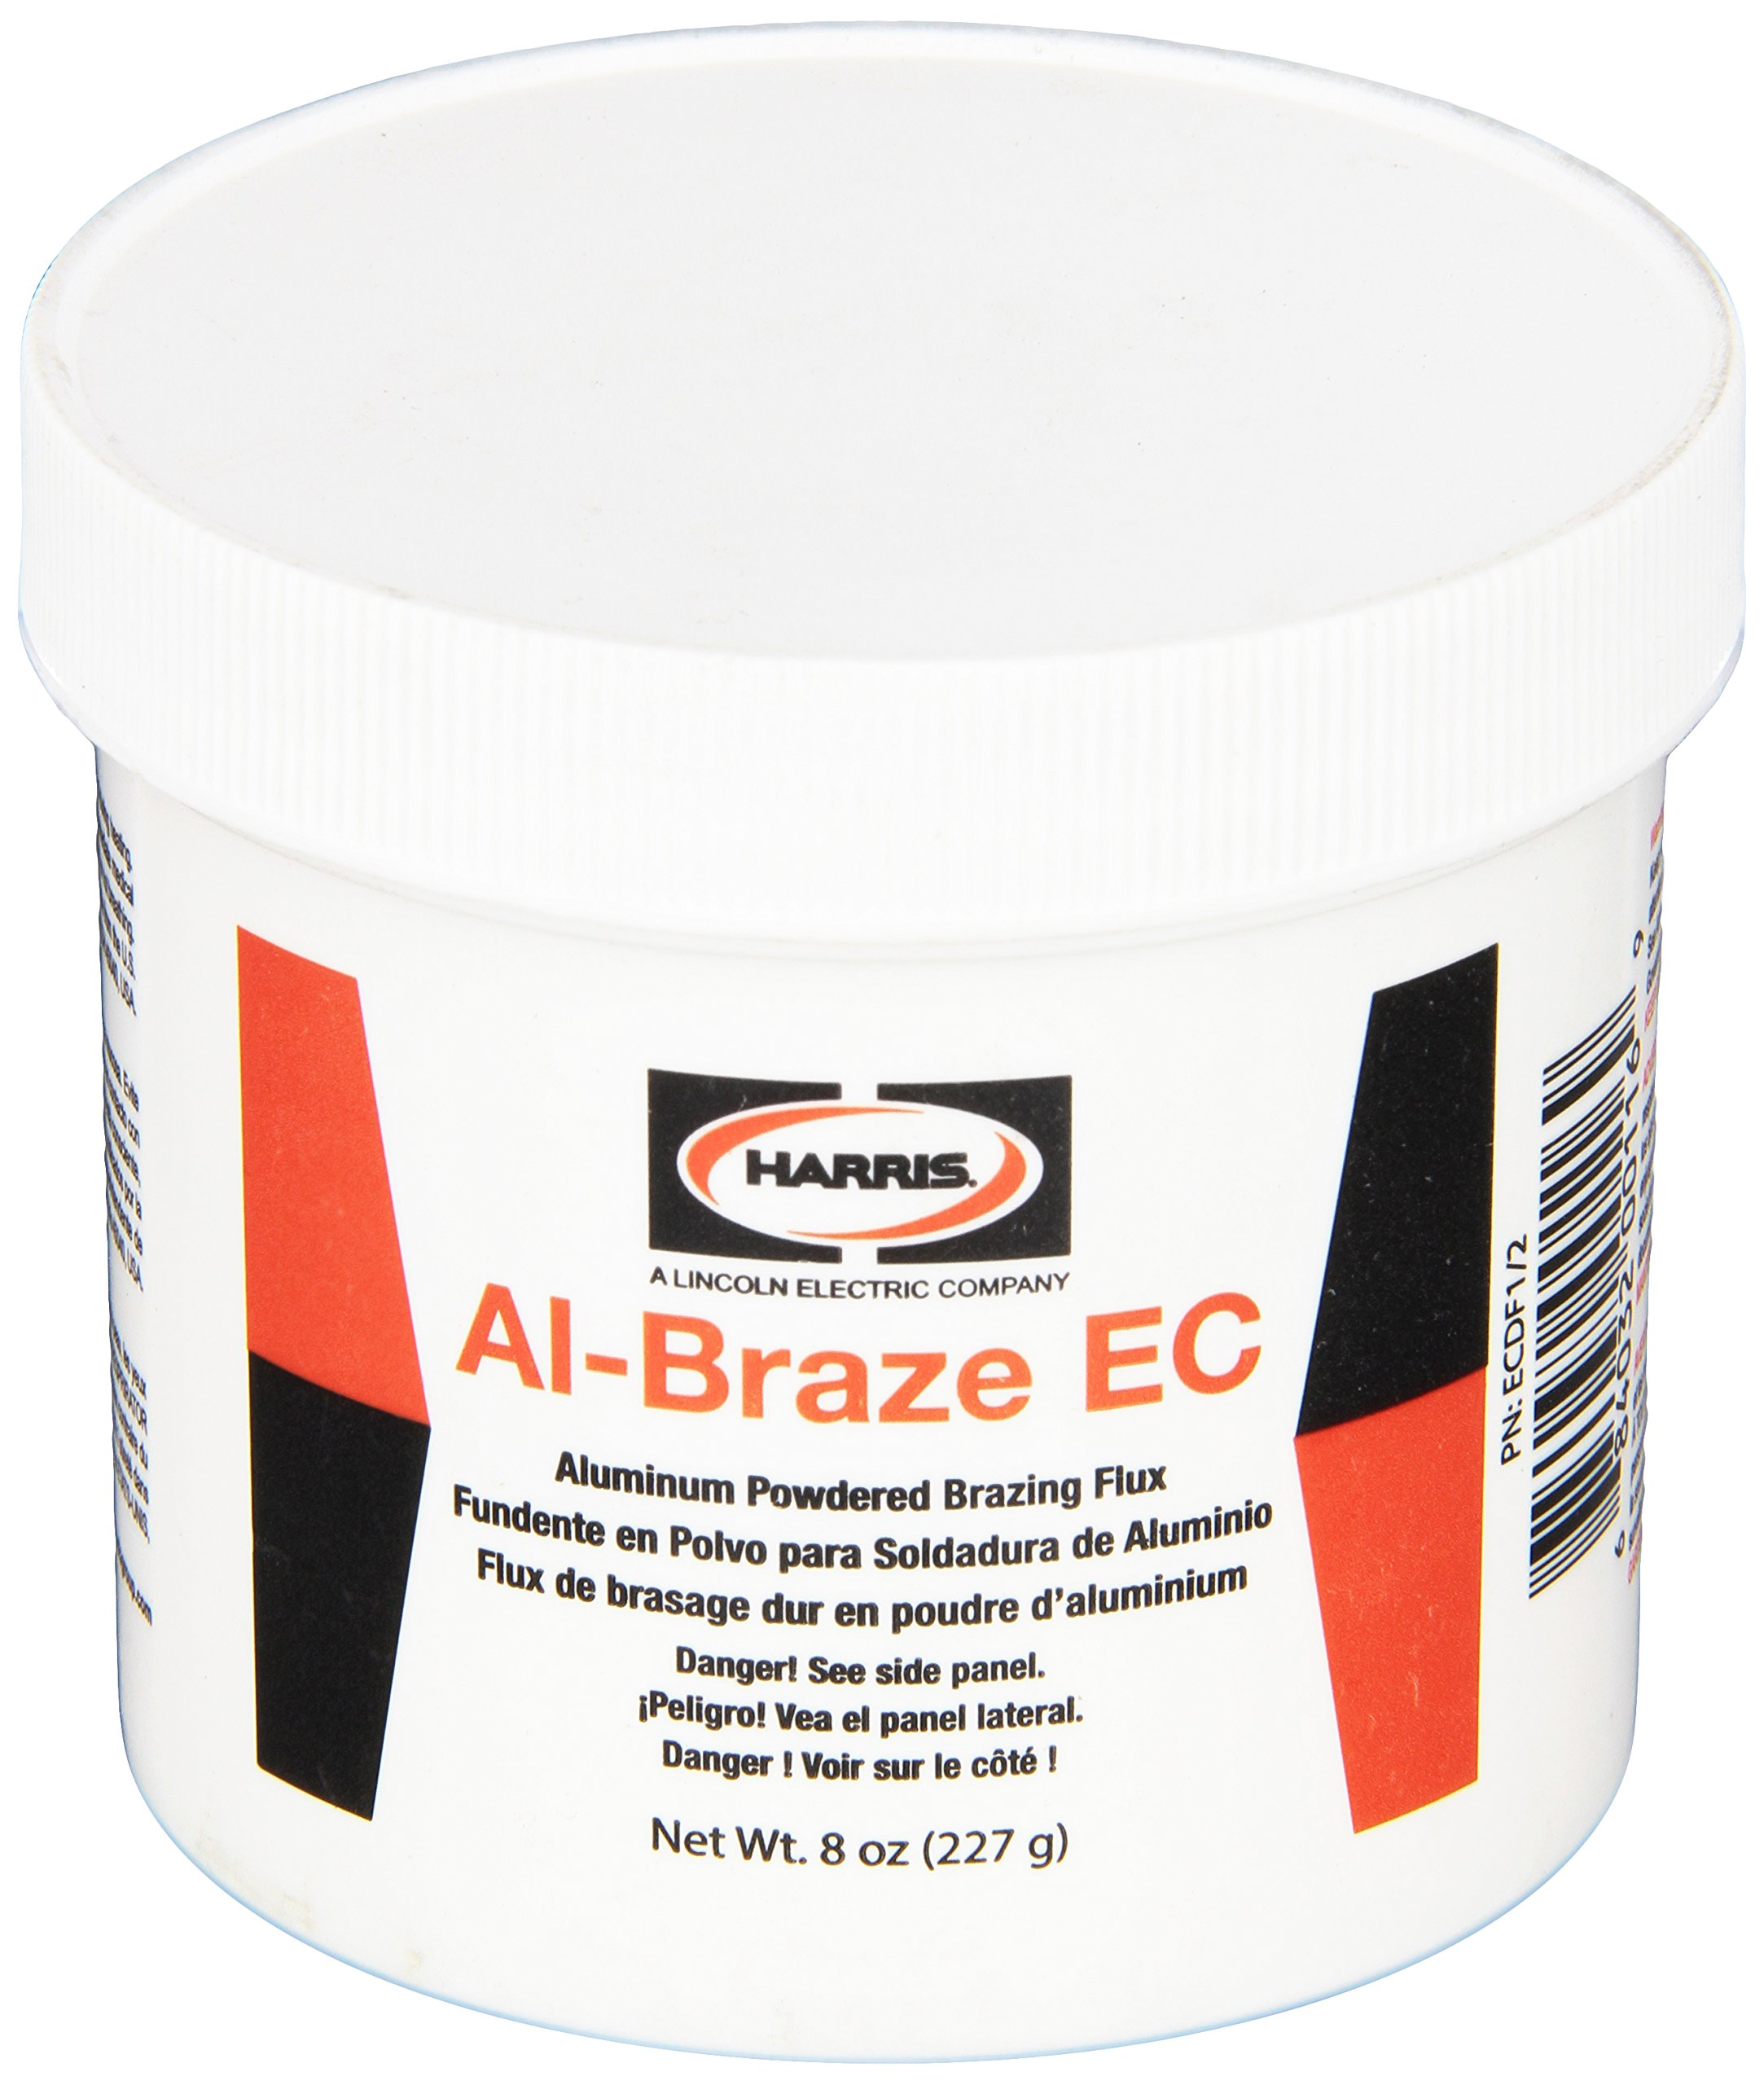 Harris ECDF1/2 Al-Braze EC Powder Flux,1/2 lb. Jar